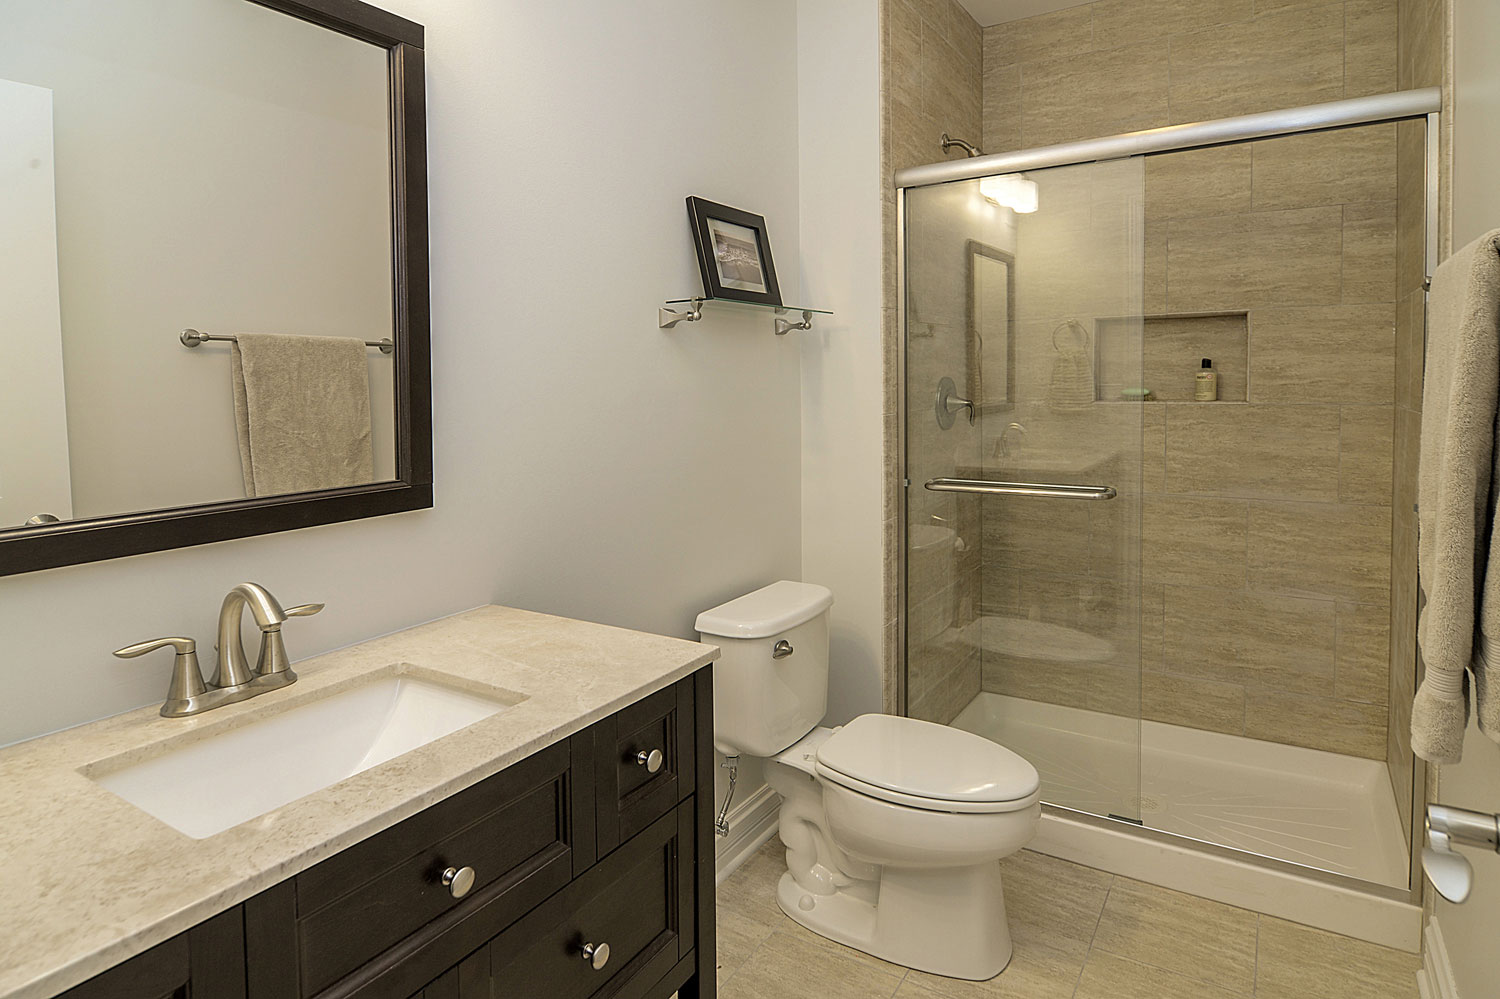 Steve emily 39 s hall bathroom remodel pictures home Bathroom remodeling services